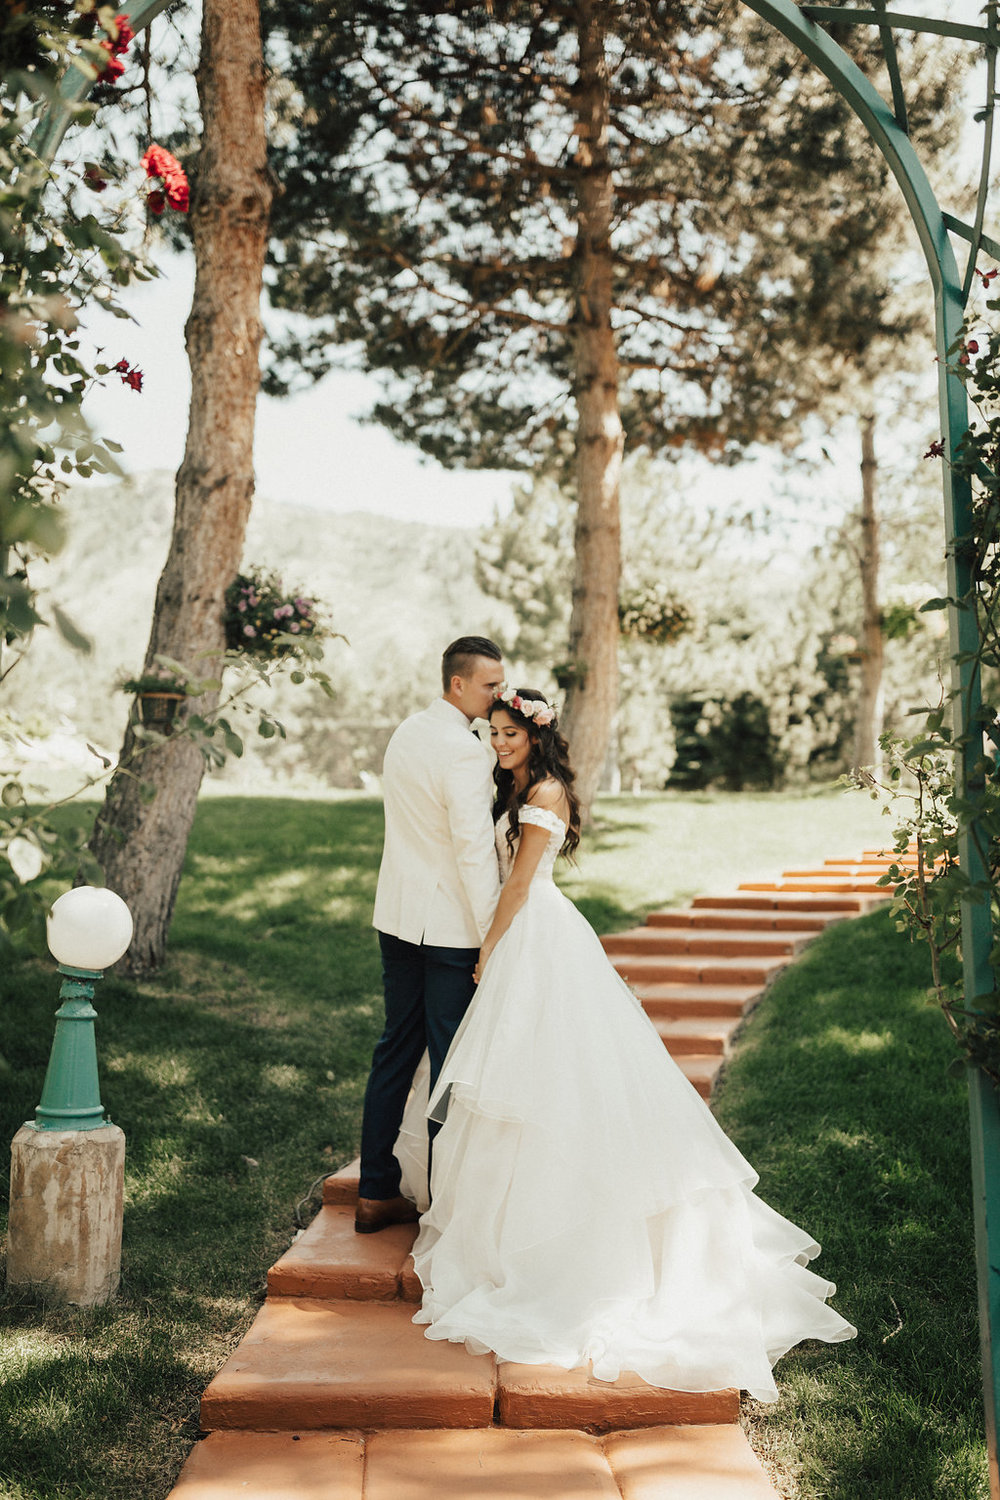 Summer Wedding at La Caille | Romantic Summer Wedding | Michelle Leo Events | Utah Event Planner